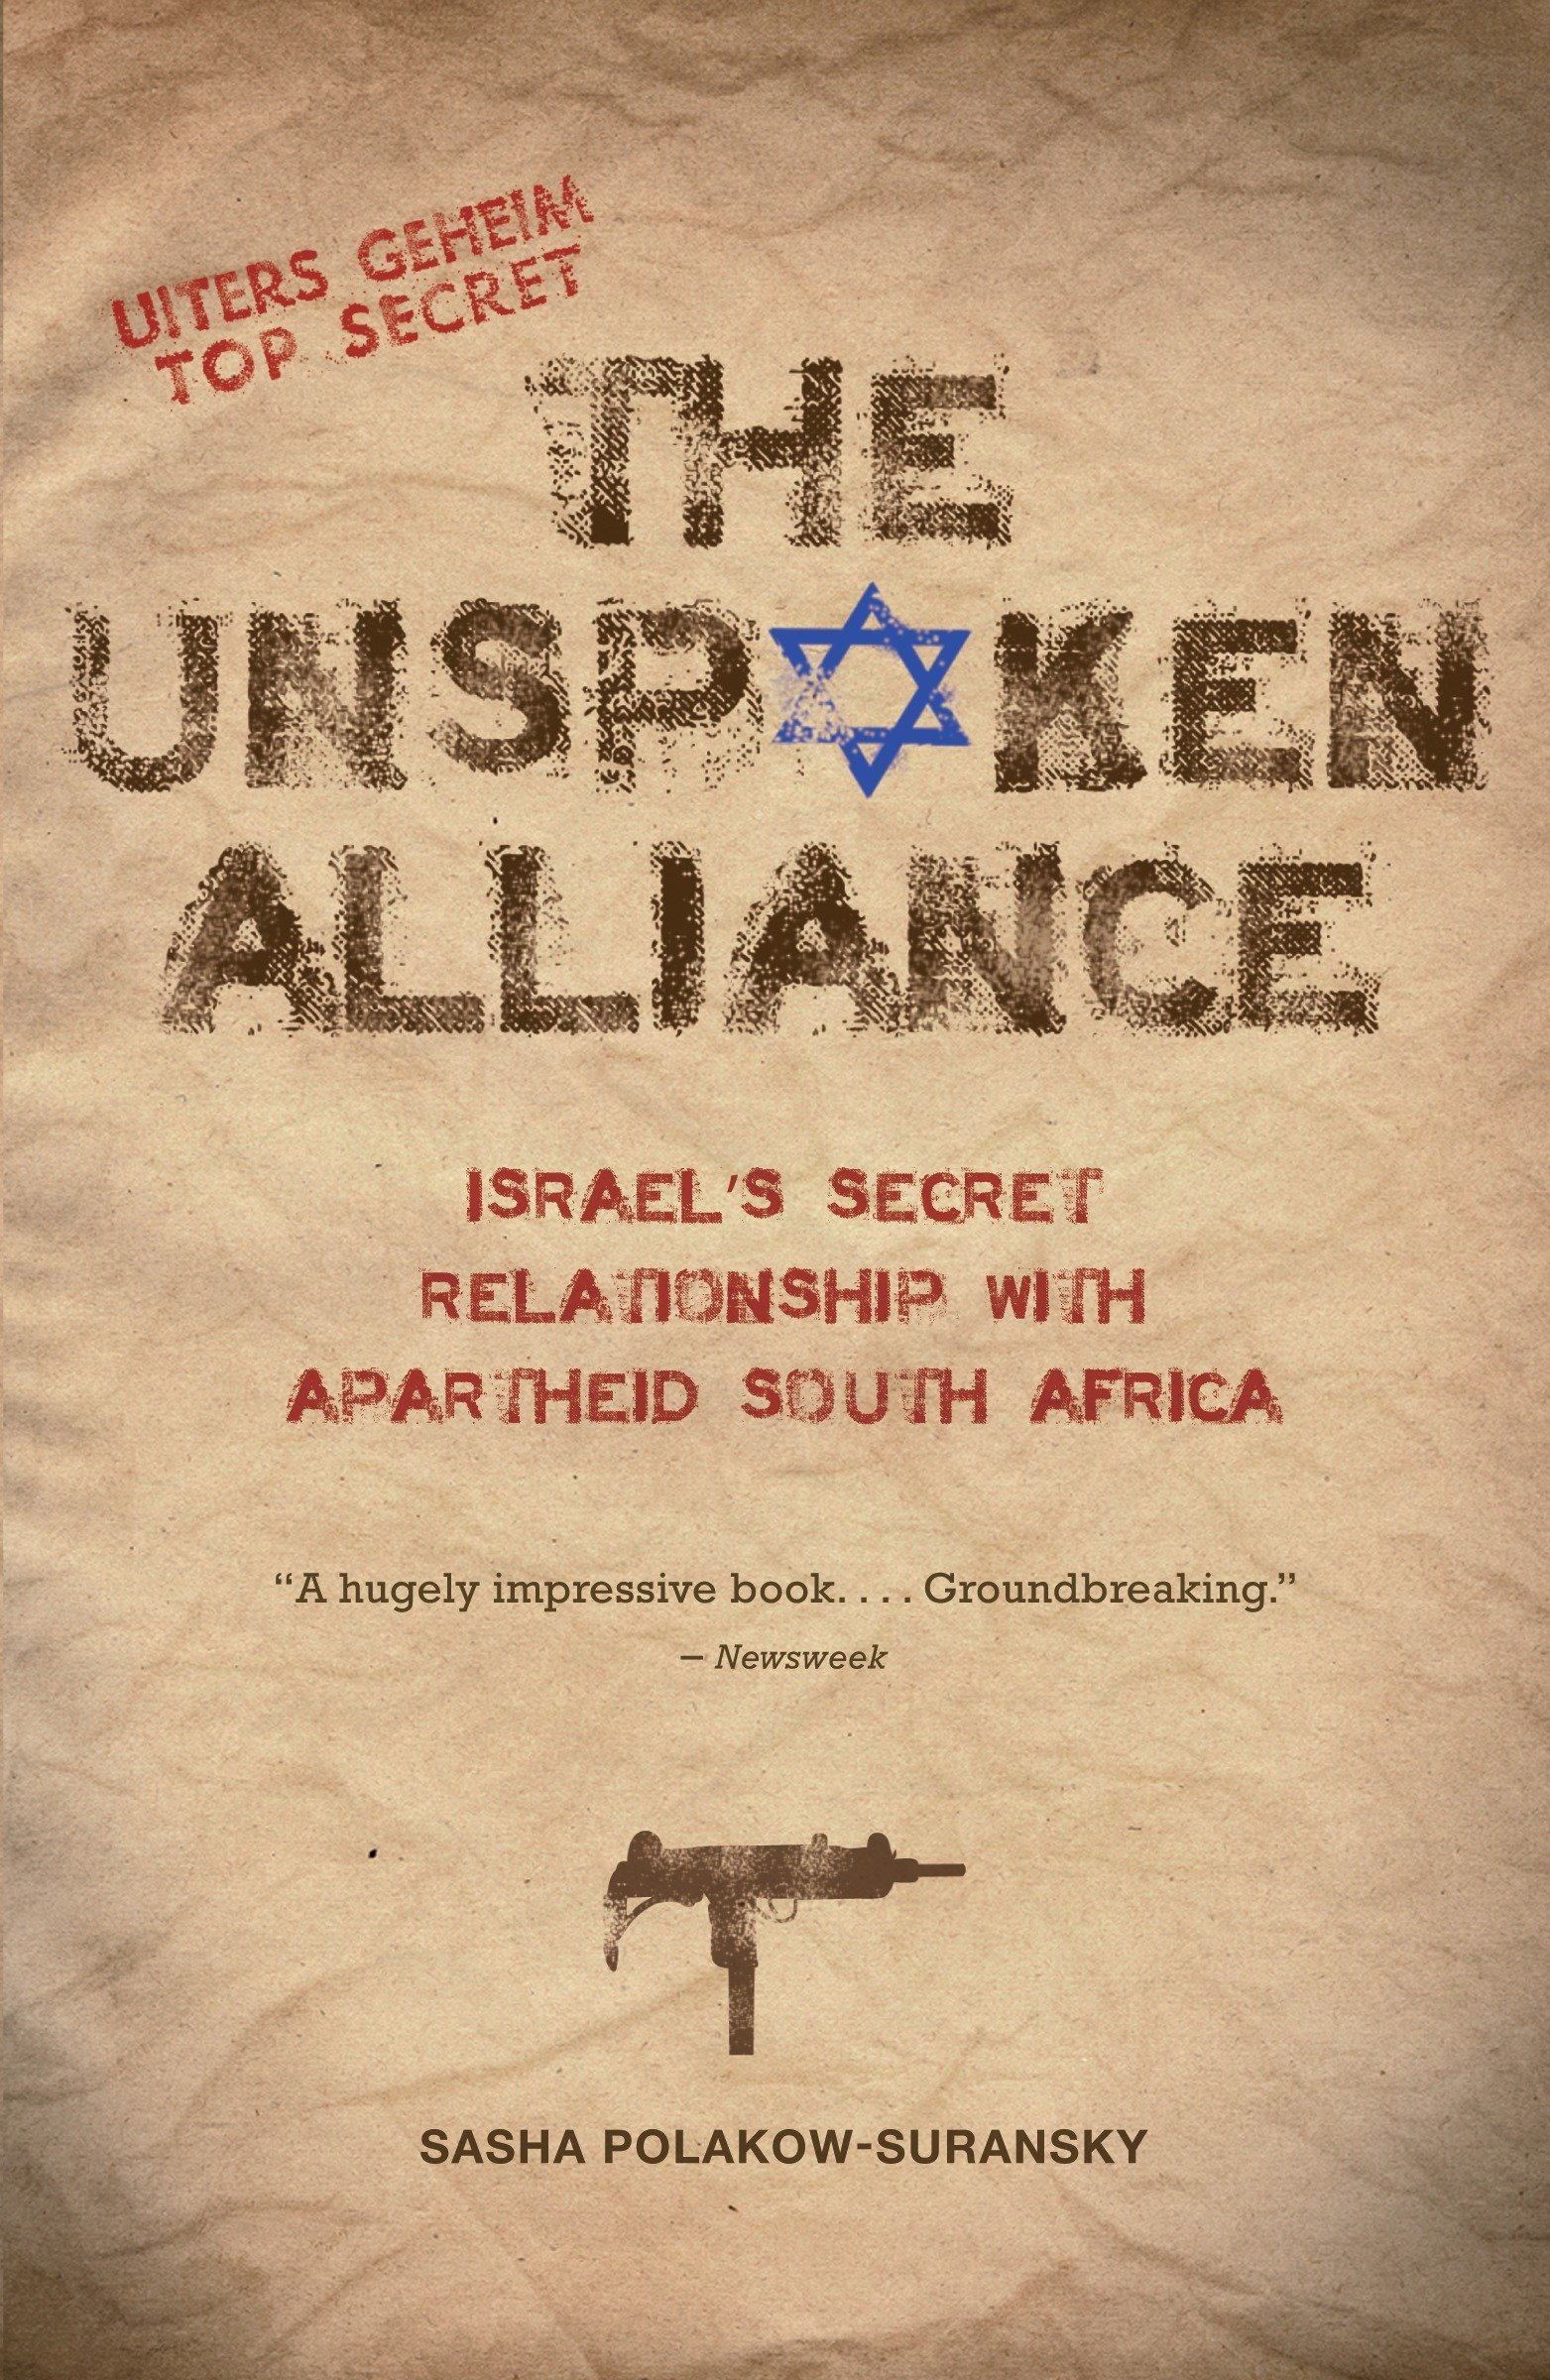 Excerpt from: 'The Unspoken Alliance: Israel's Secret Relationship with Apartheid South Africa'